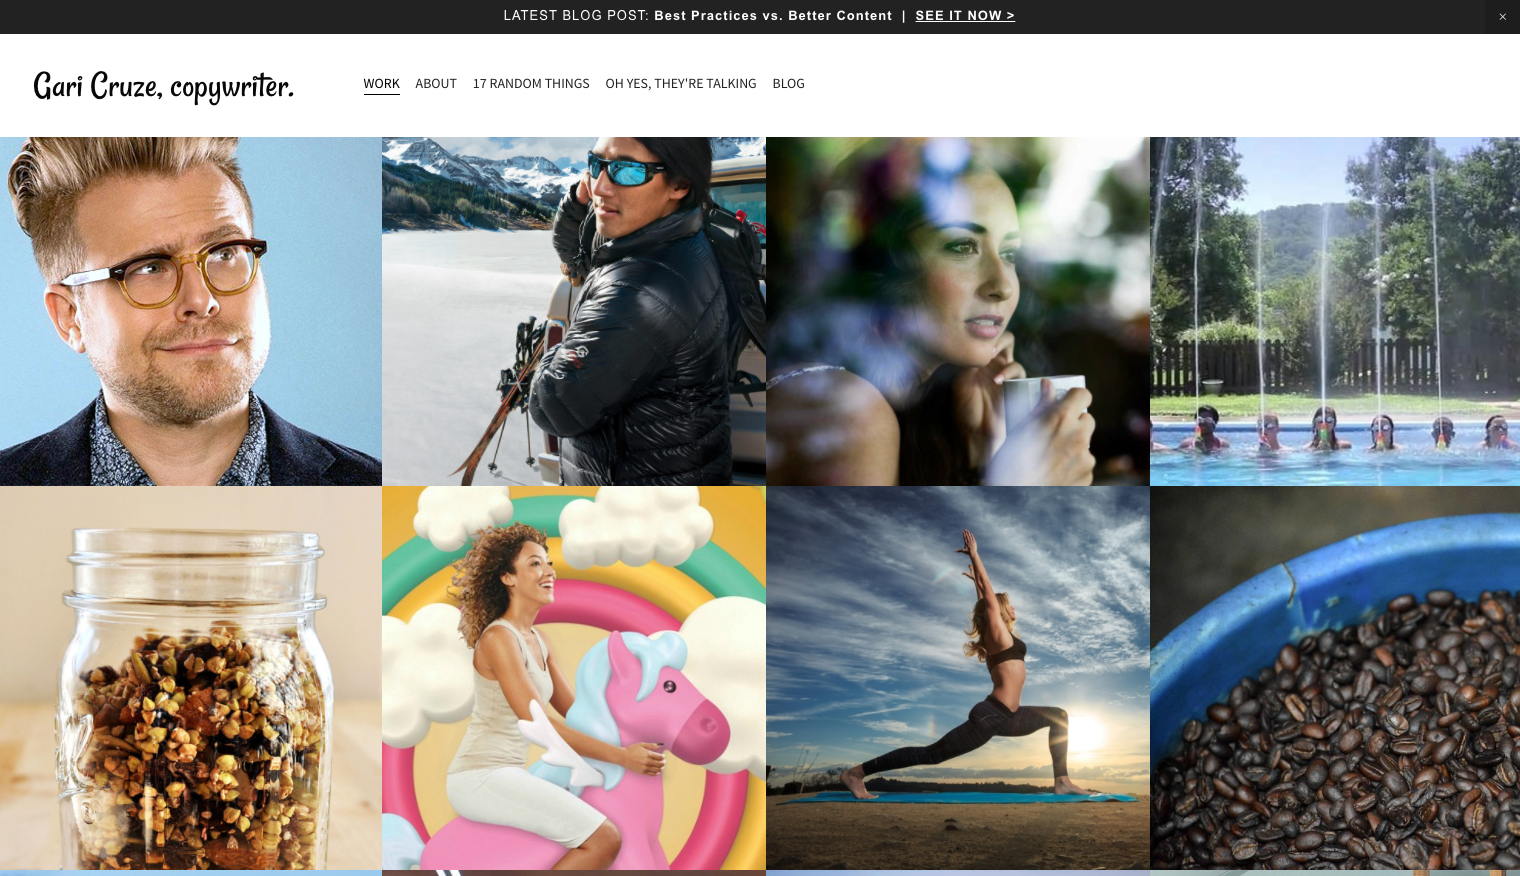 Personal website portfolio of Gari Cruze with tiled images of his photography and links to his work